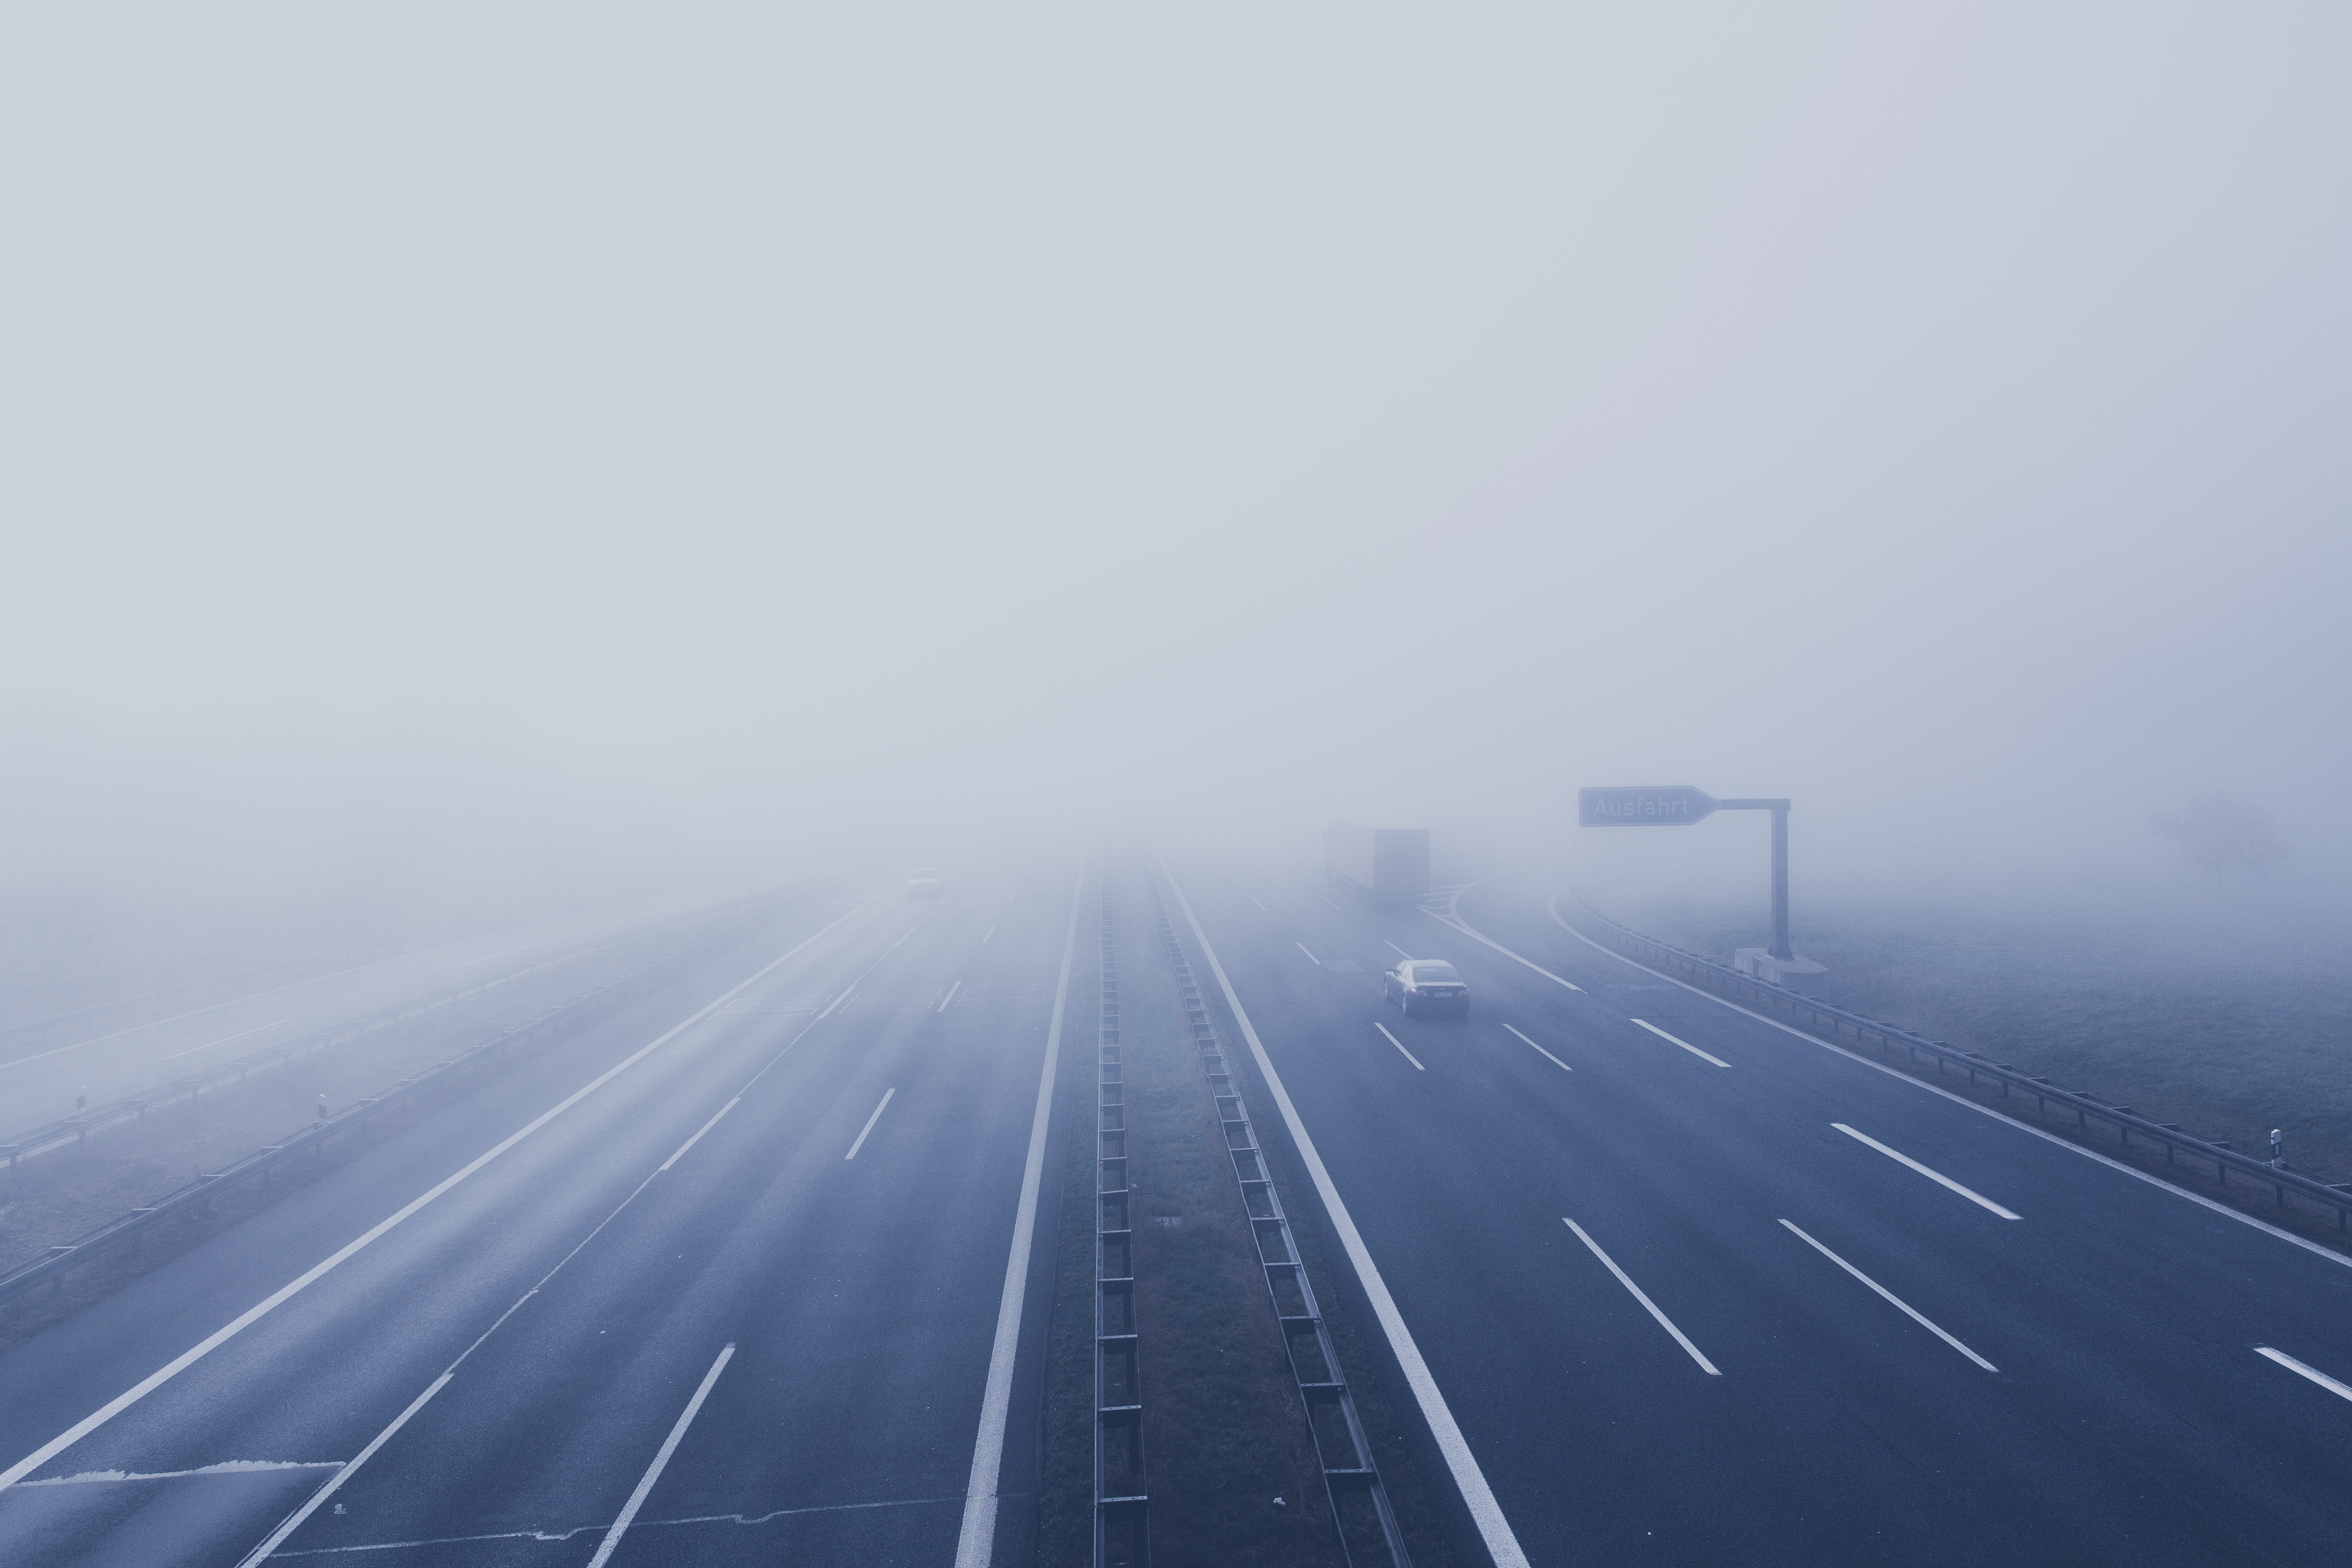 A foggy background over a motorway near the Bindlacher Berg Airport in Germany